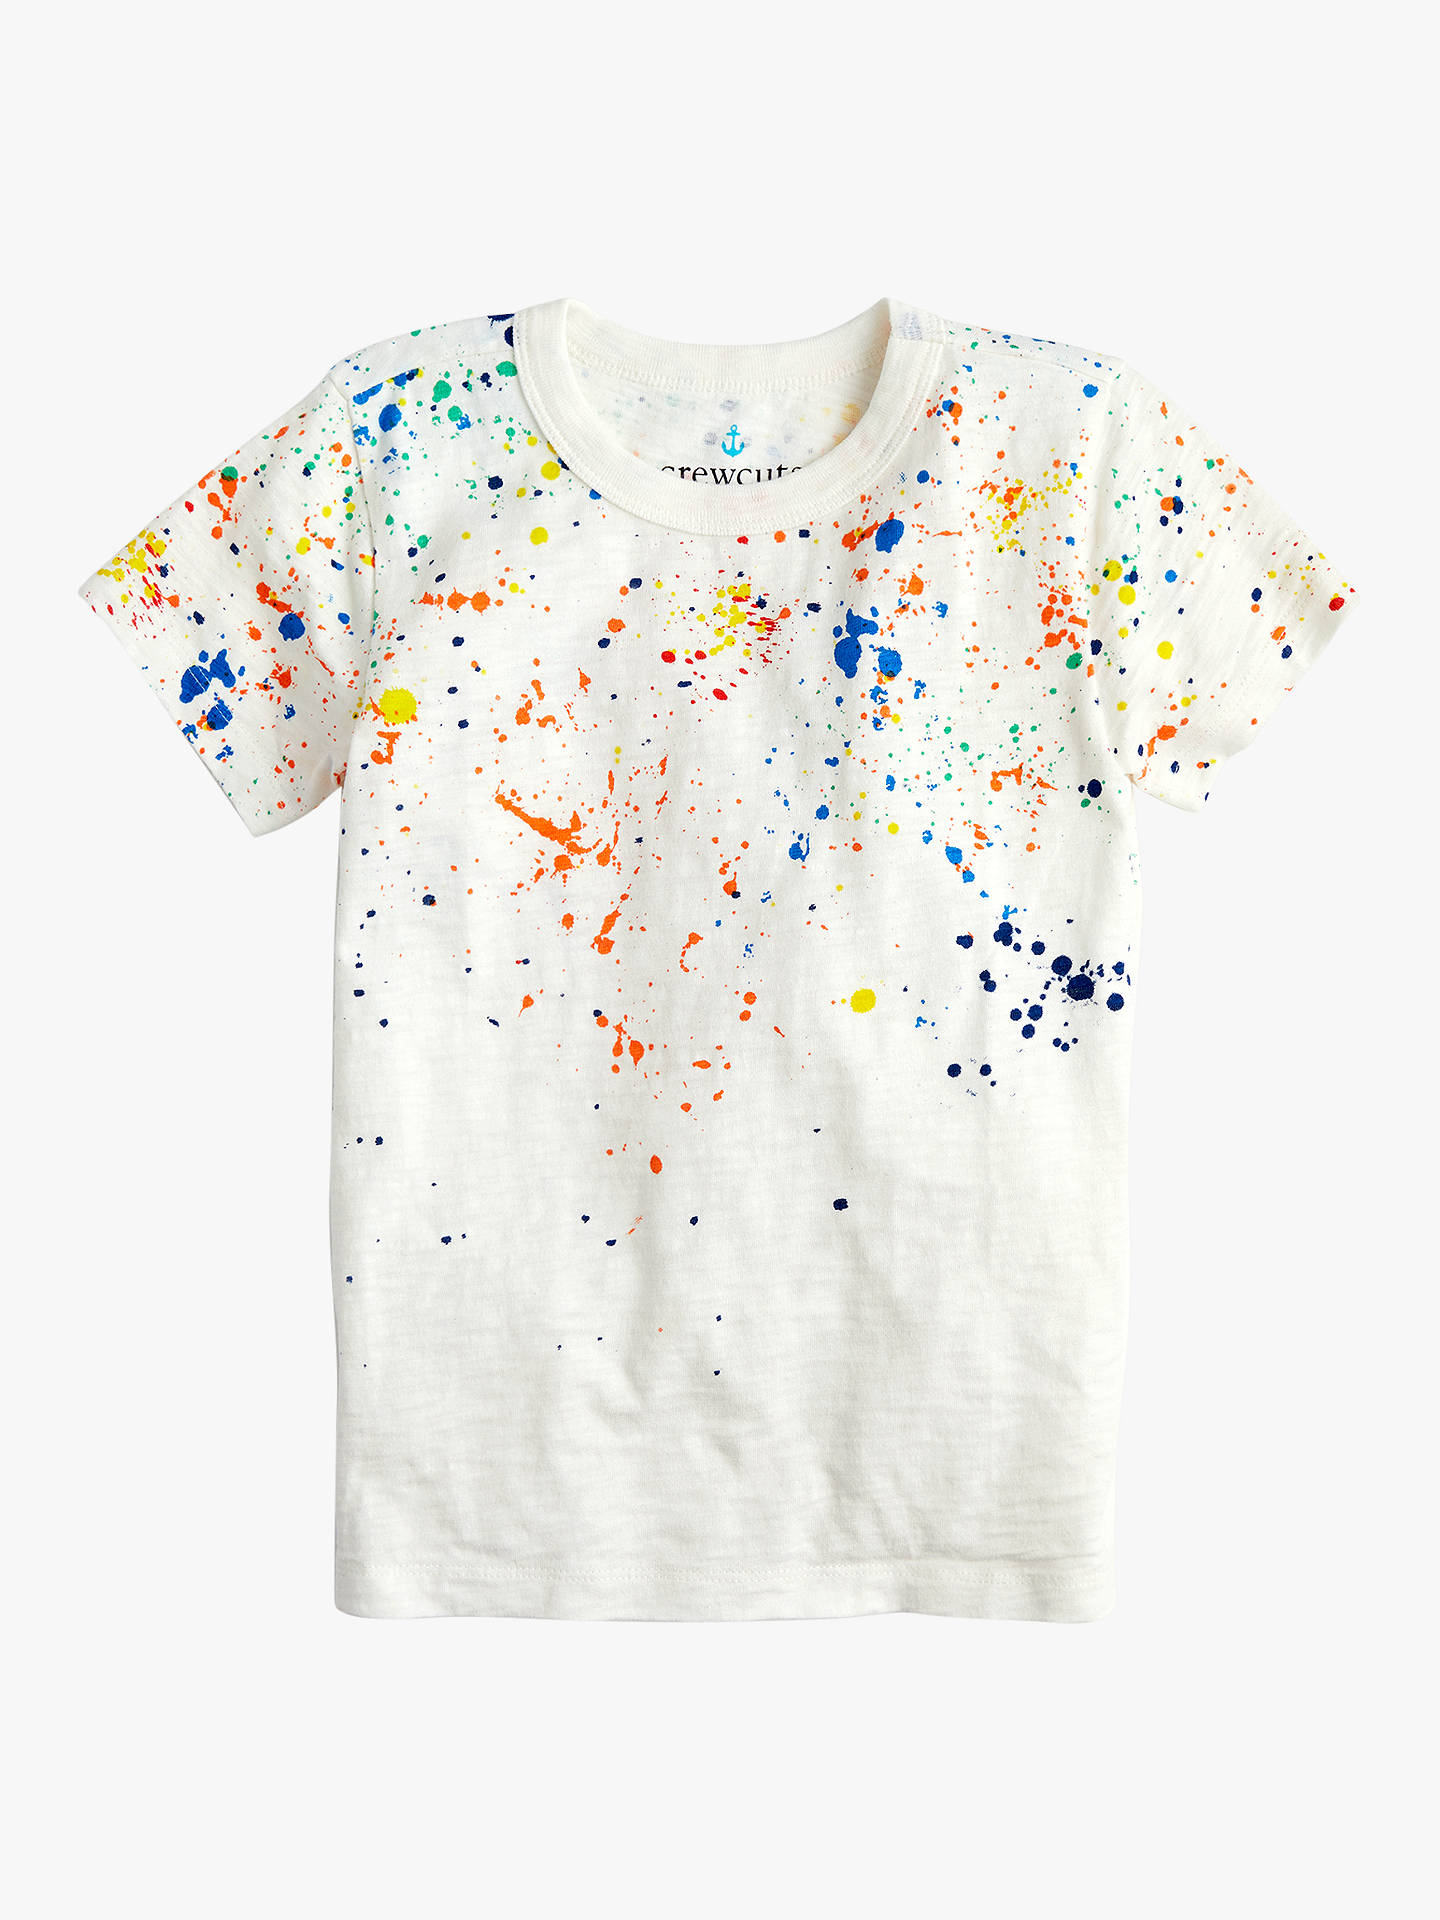 7e1425637 crewcuts by J.Crew Boys' Rainbow Splatter T-Shirt, White/Multi at ...